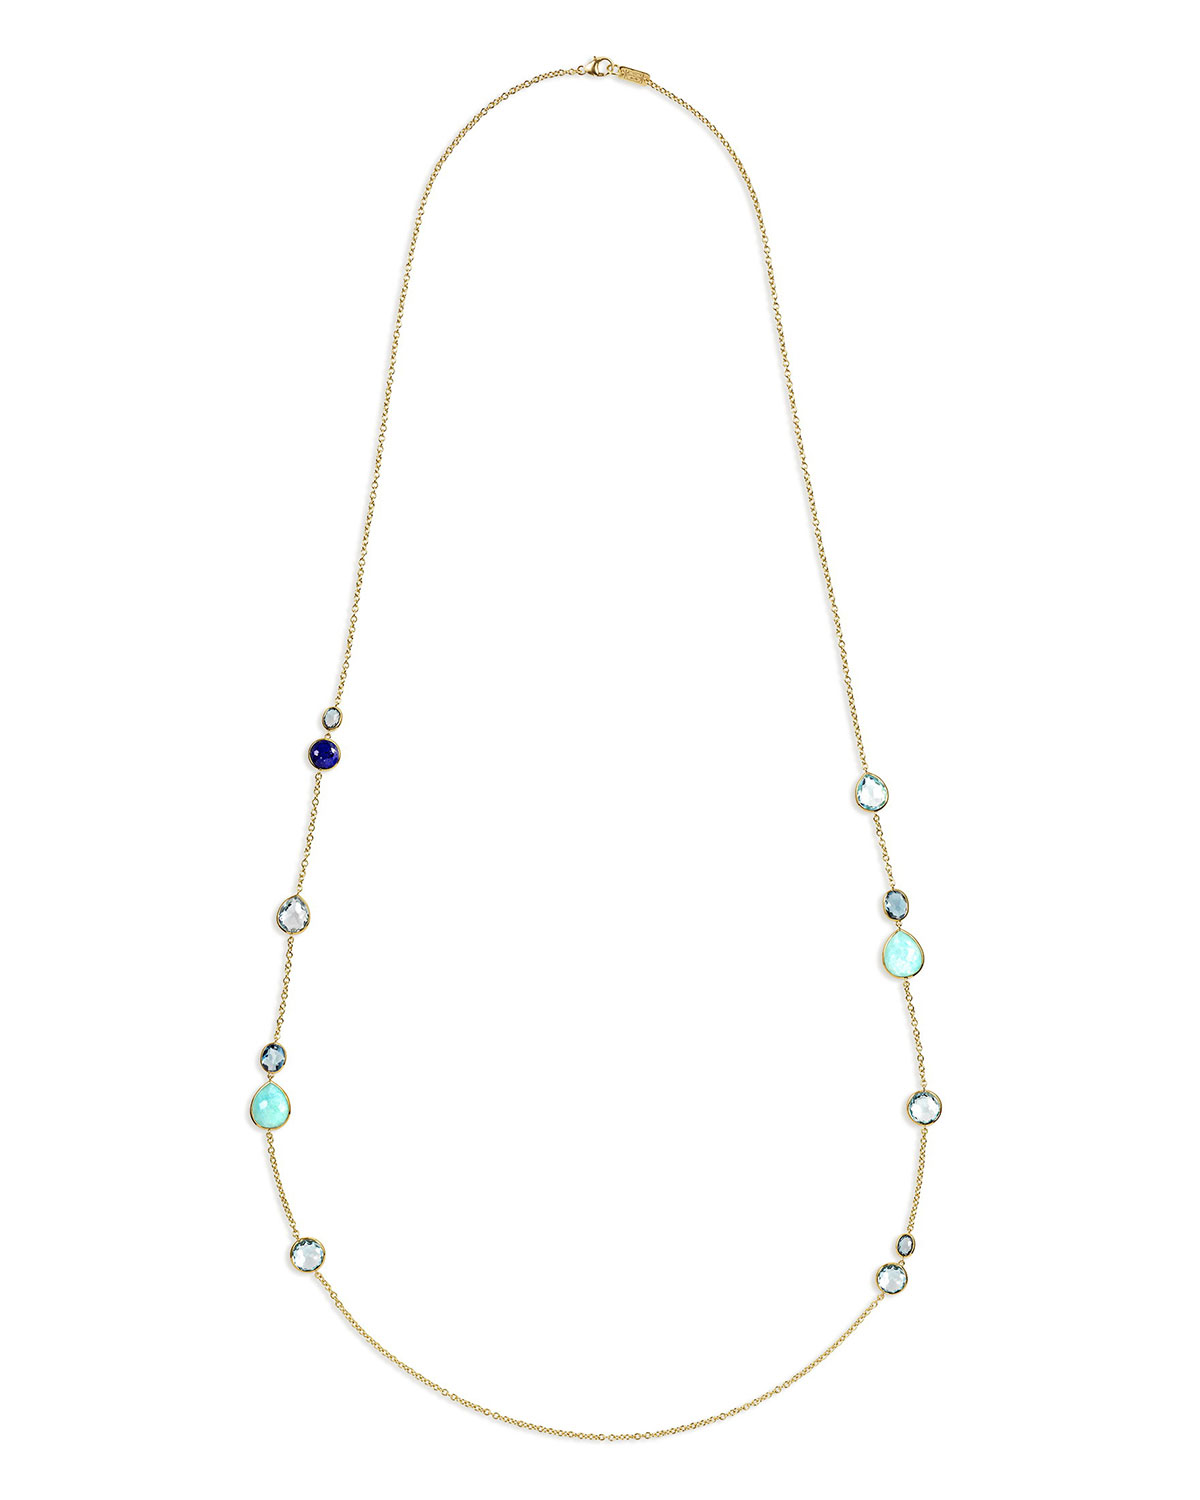 Ippolita 18K Gold Rock Candy Long Station Necklace, Waterfall